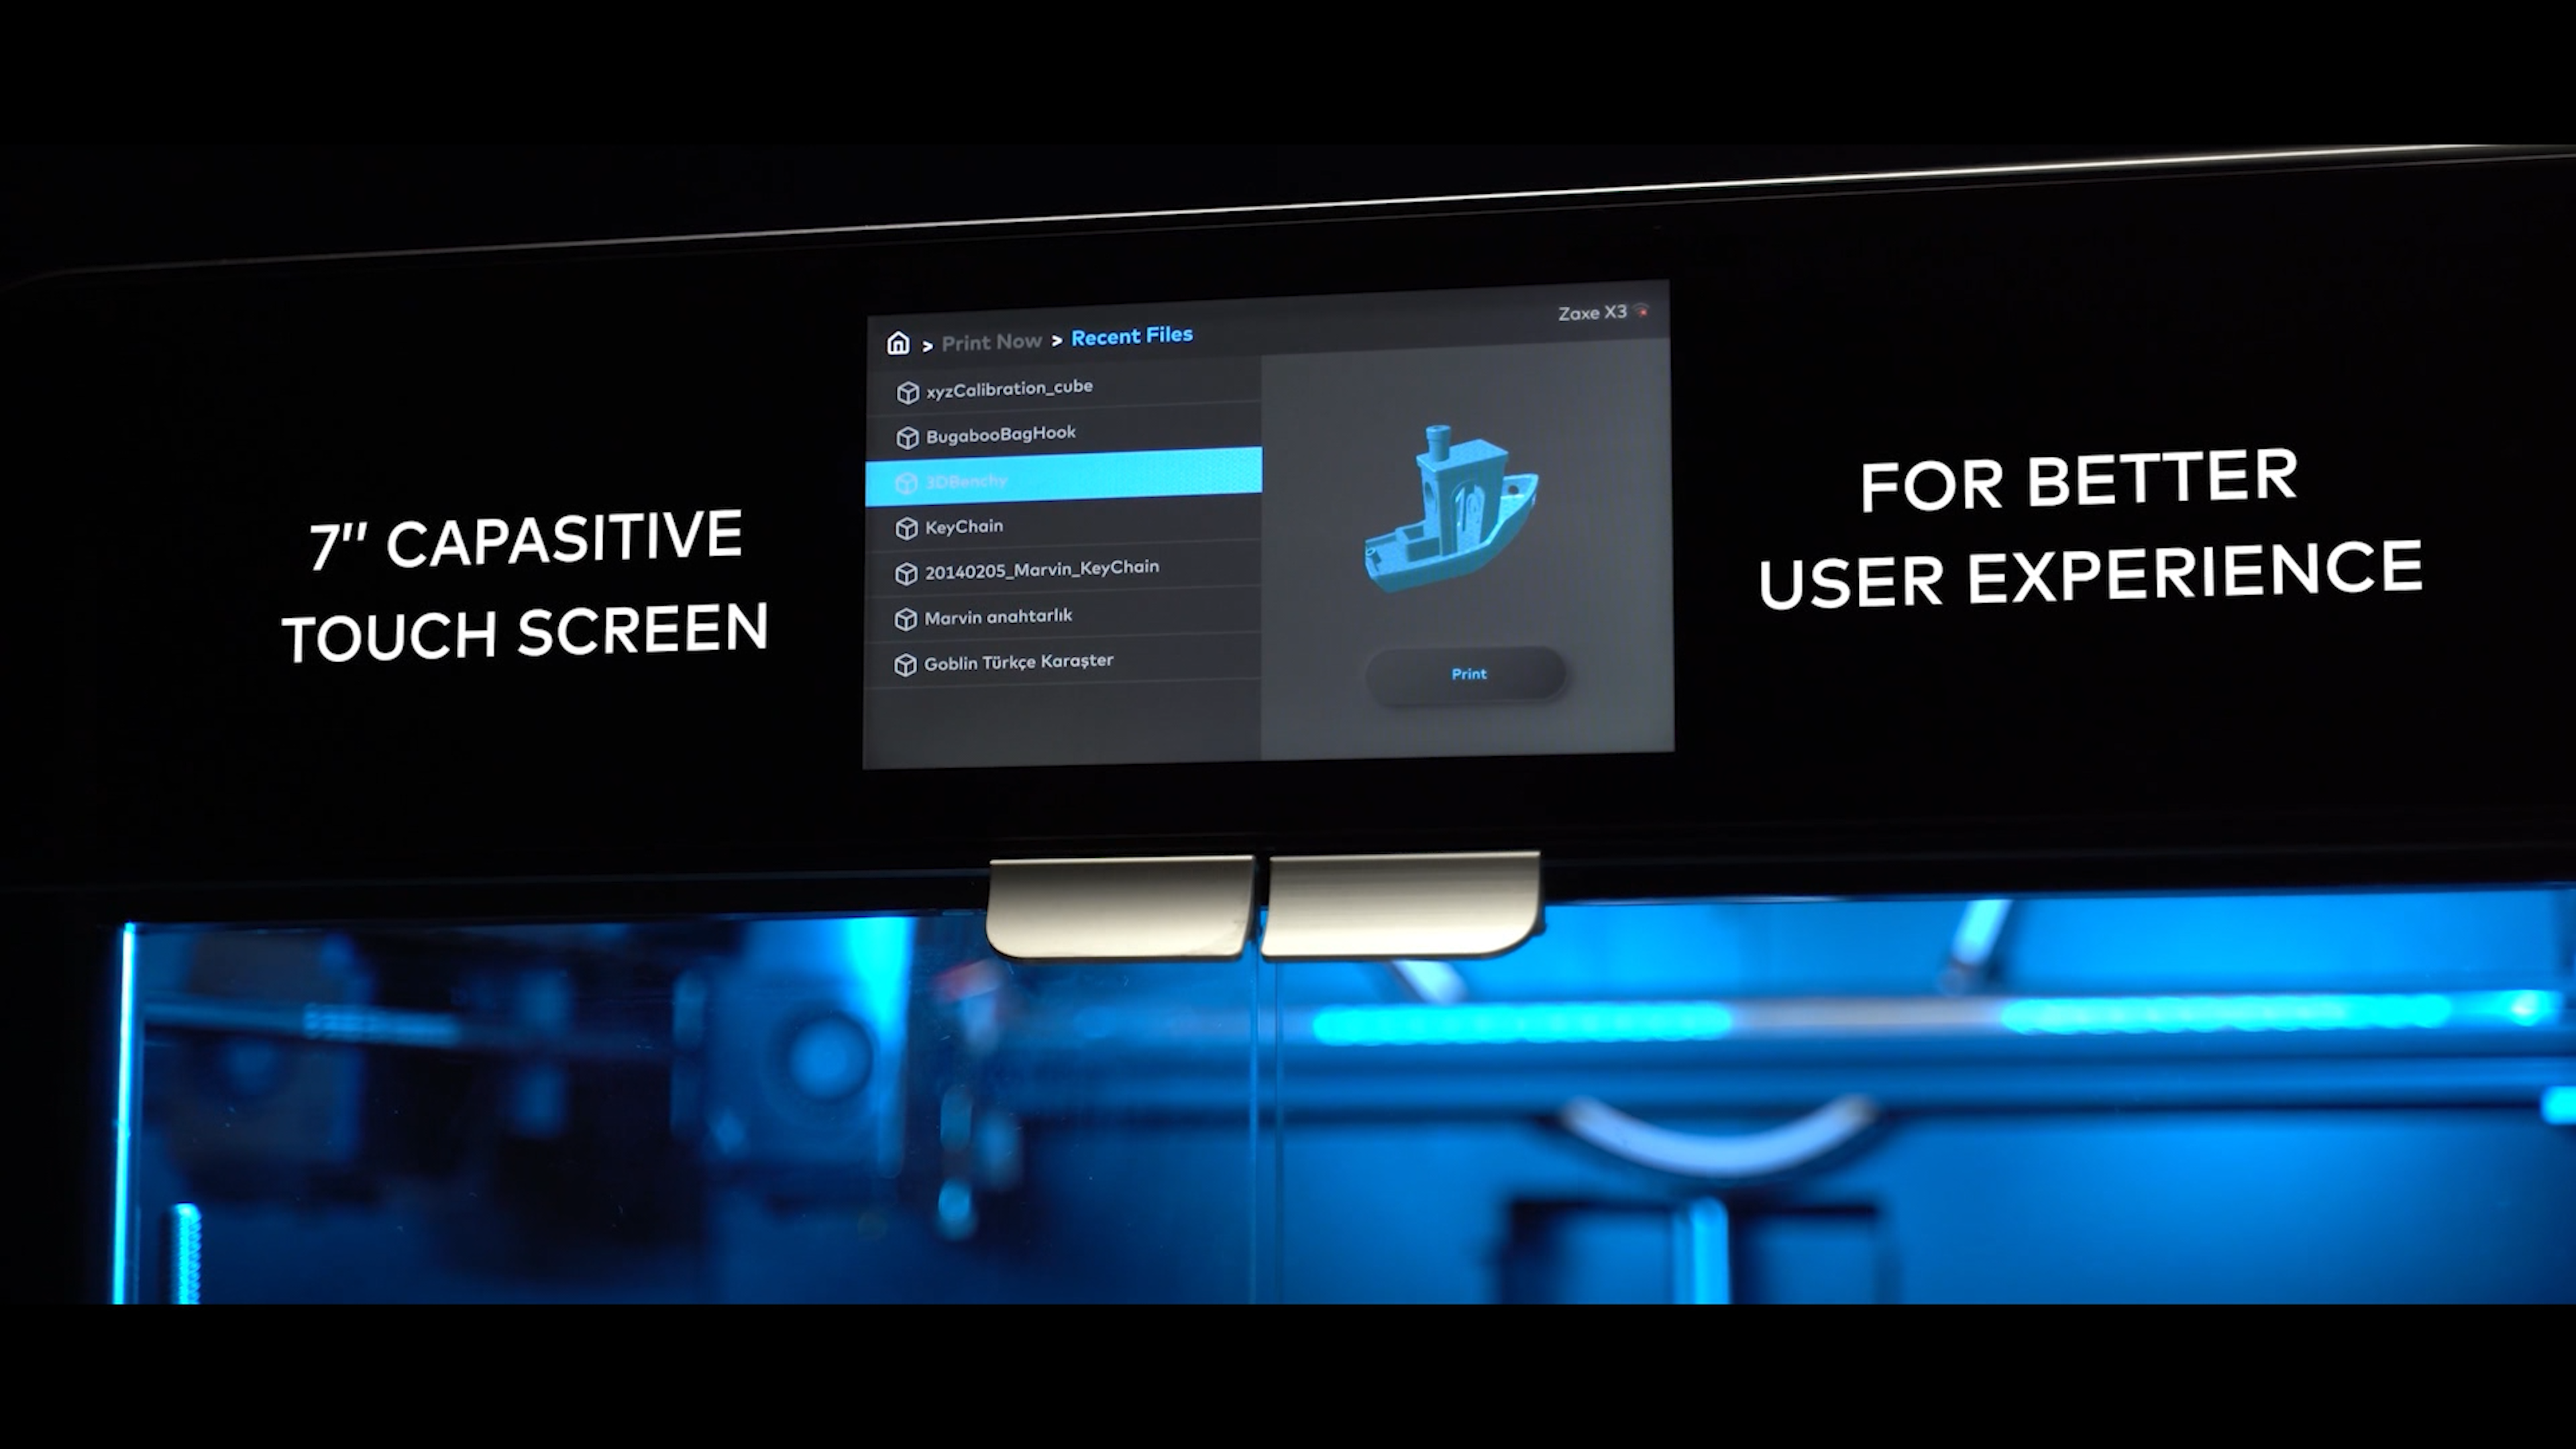 Each of Zaxe's new 3D printers features a large, easy-to-use 7-inch display screen. Photo via Zaxe.